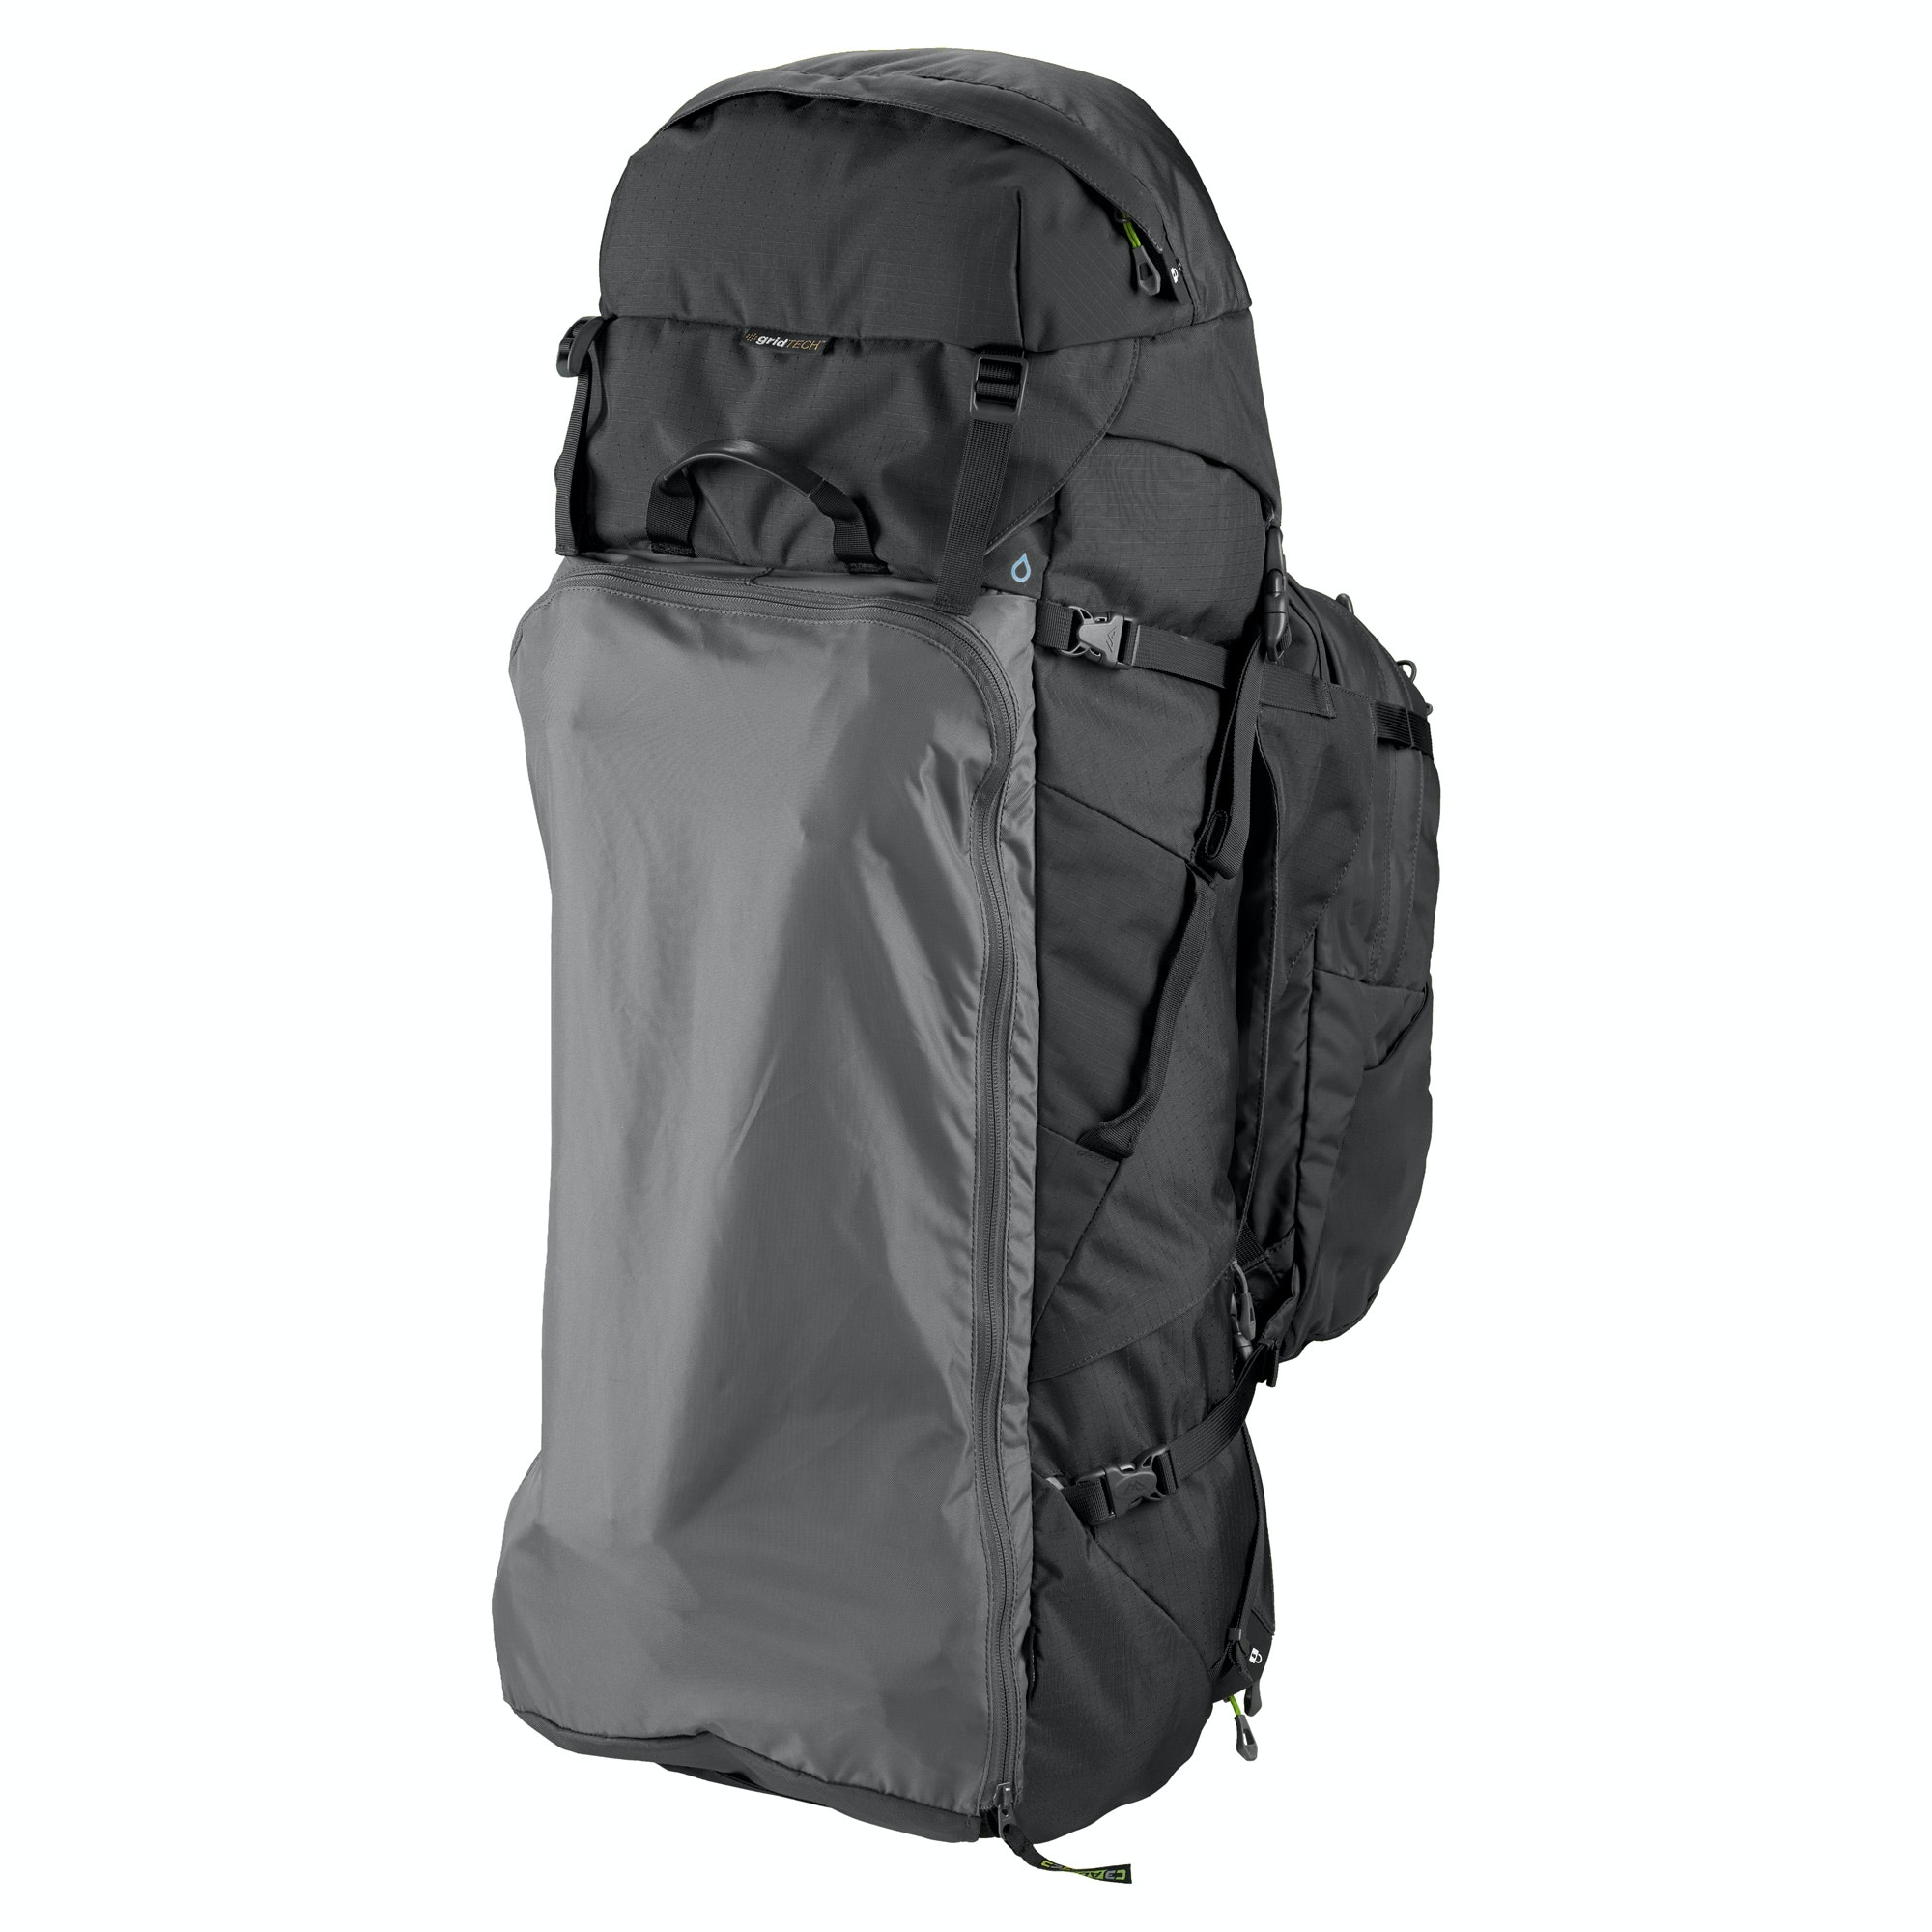 NEW-Kathmandu-Interloper-gridTECH-70L-Hiking-Travel-Backpack-Luggage-with thumbnail 7